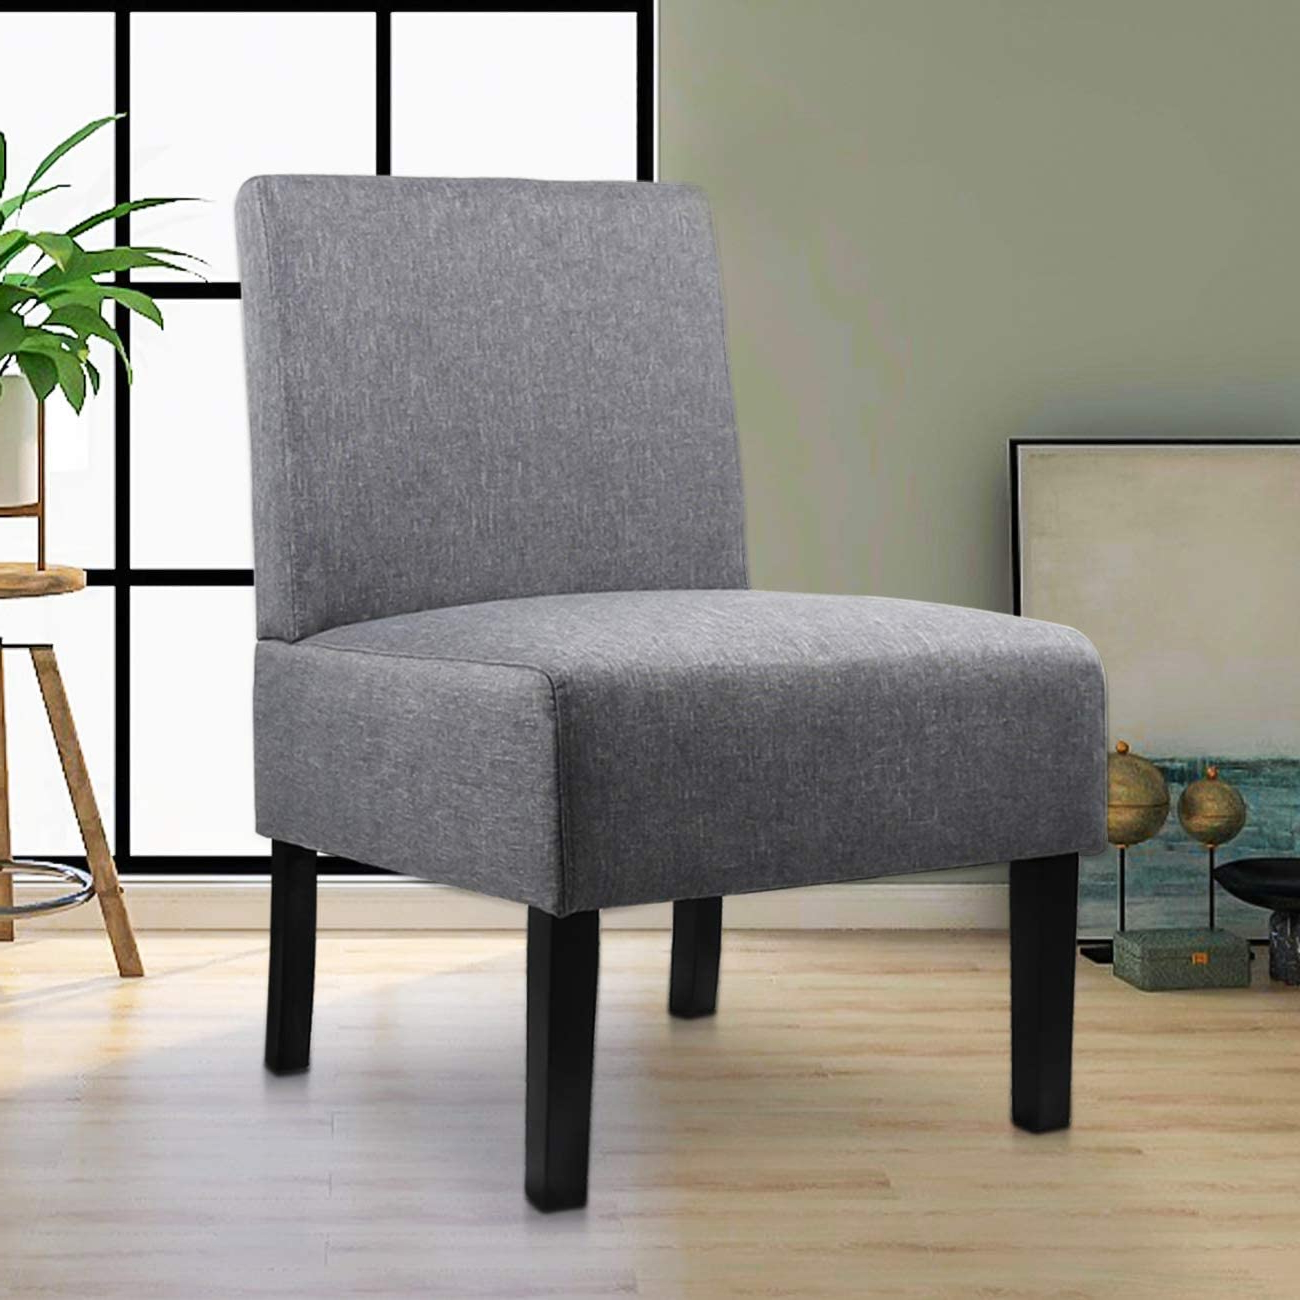 Well Known Goodyear Slipper Chairs Regarding Modern Fabric Armless Accent Chair Decorative Slipper Chair Vanity Chair For Bedroom Desk, Corner Side Chair Living Room Furniture Grey – Walmart (View 9 of 20)